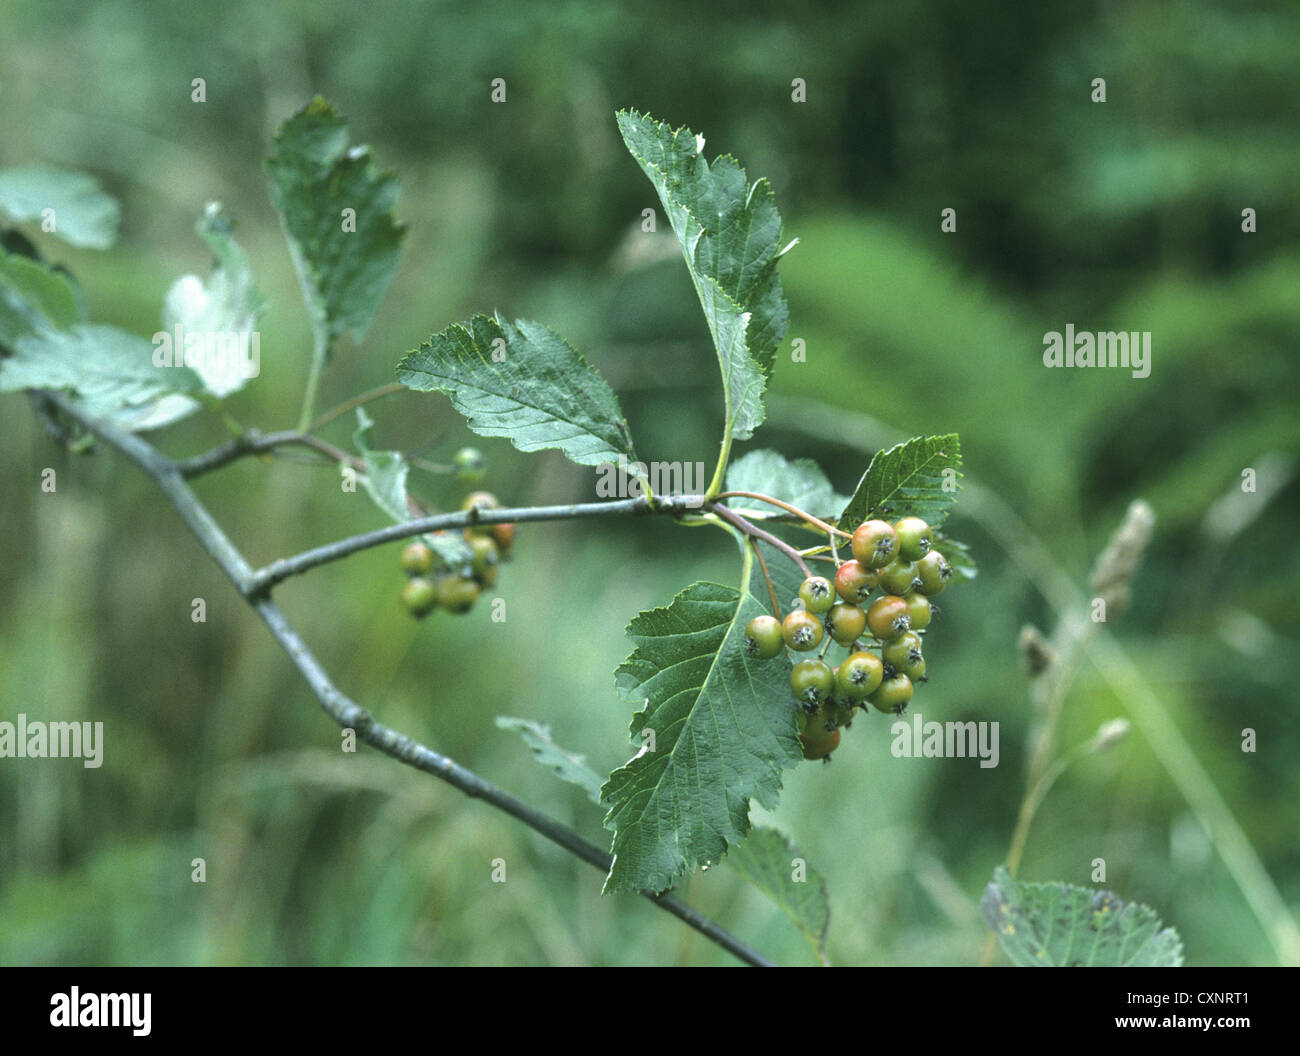 Sorbus anglica (Rosaceae) - Stock Image